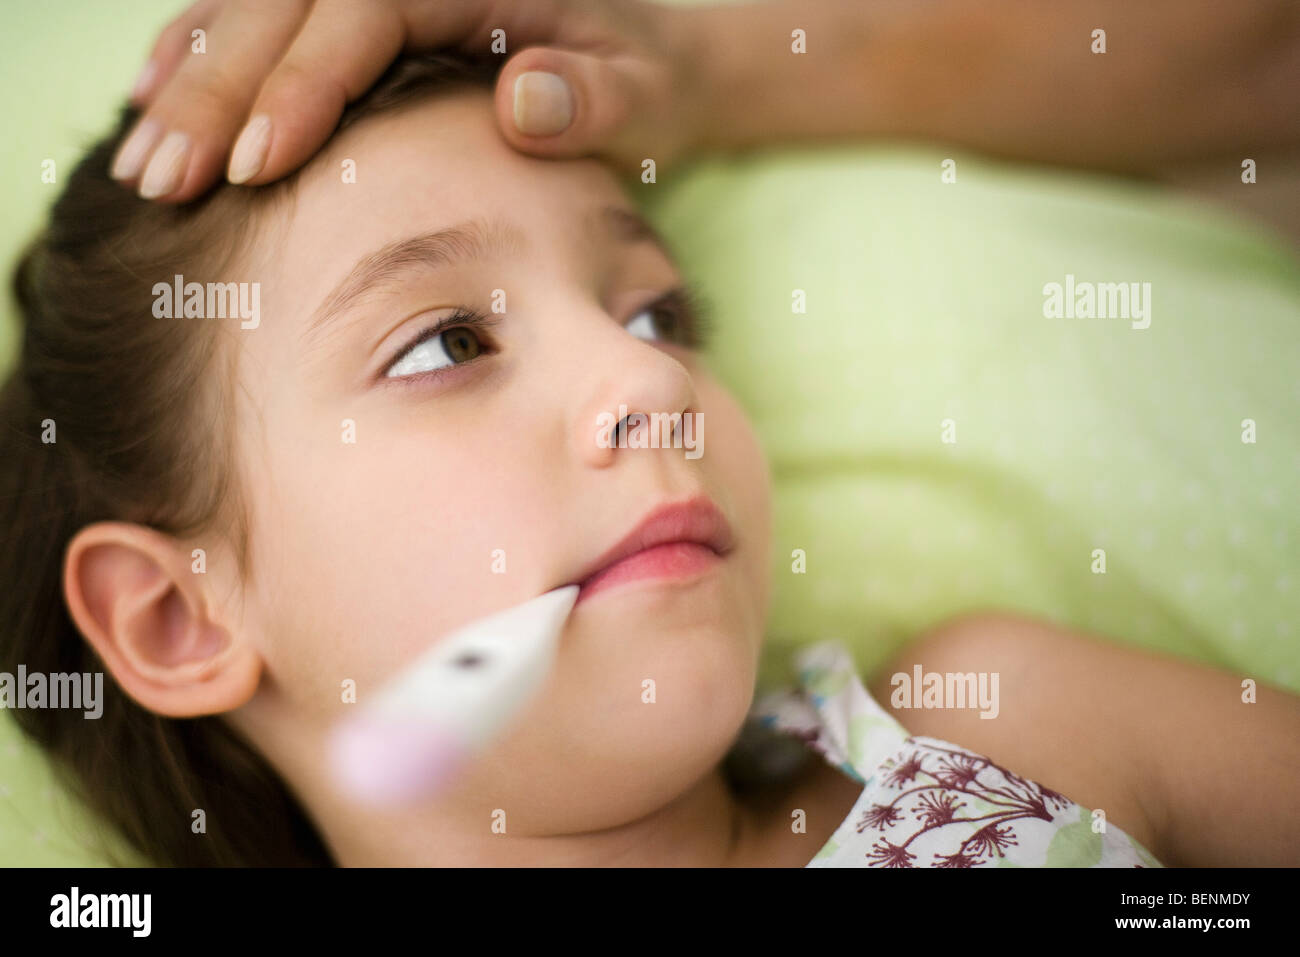 Little girl with fever, thermometer in mouth - Stock Image